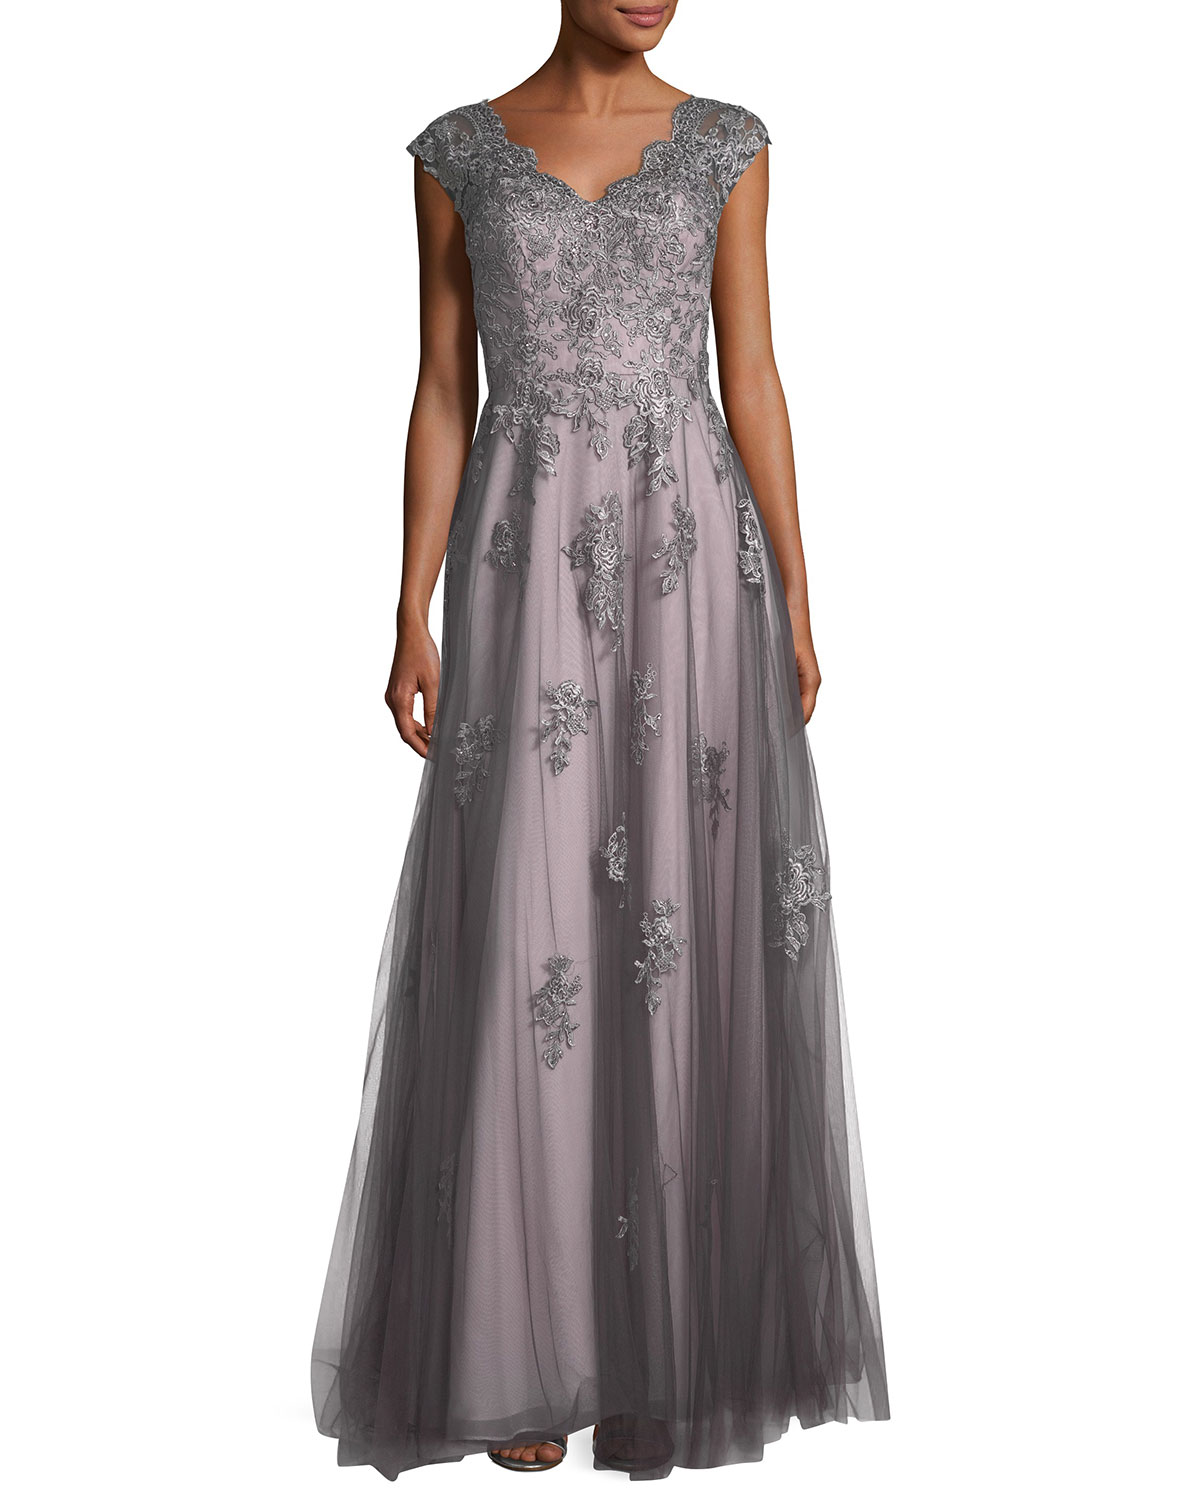 La Femme V Neck Embroidered Mesh Evening Gown Neiman Marcus